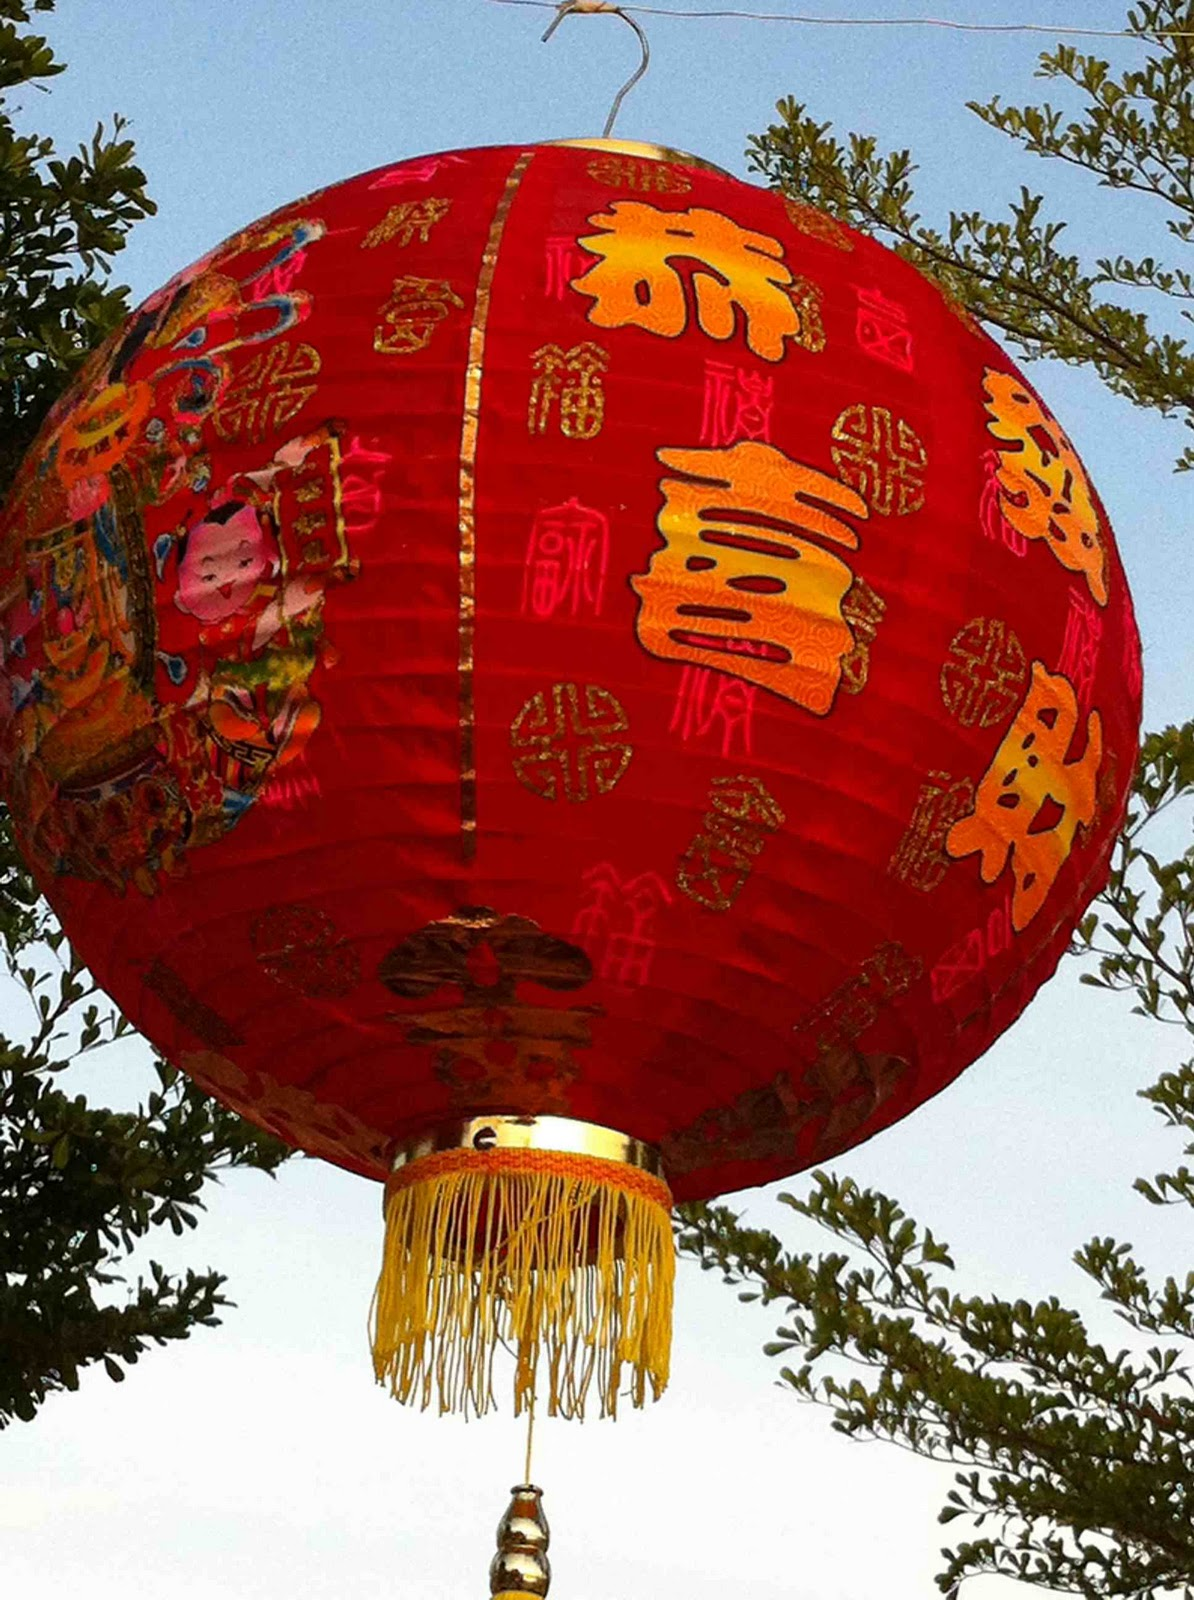 Musings on Penang: CNY -- Round Things & Square Things